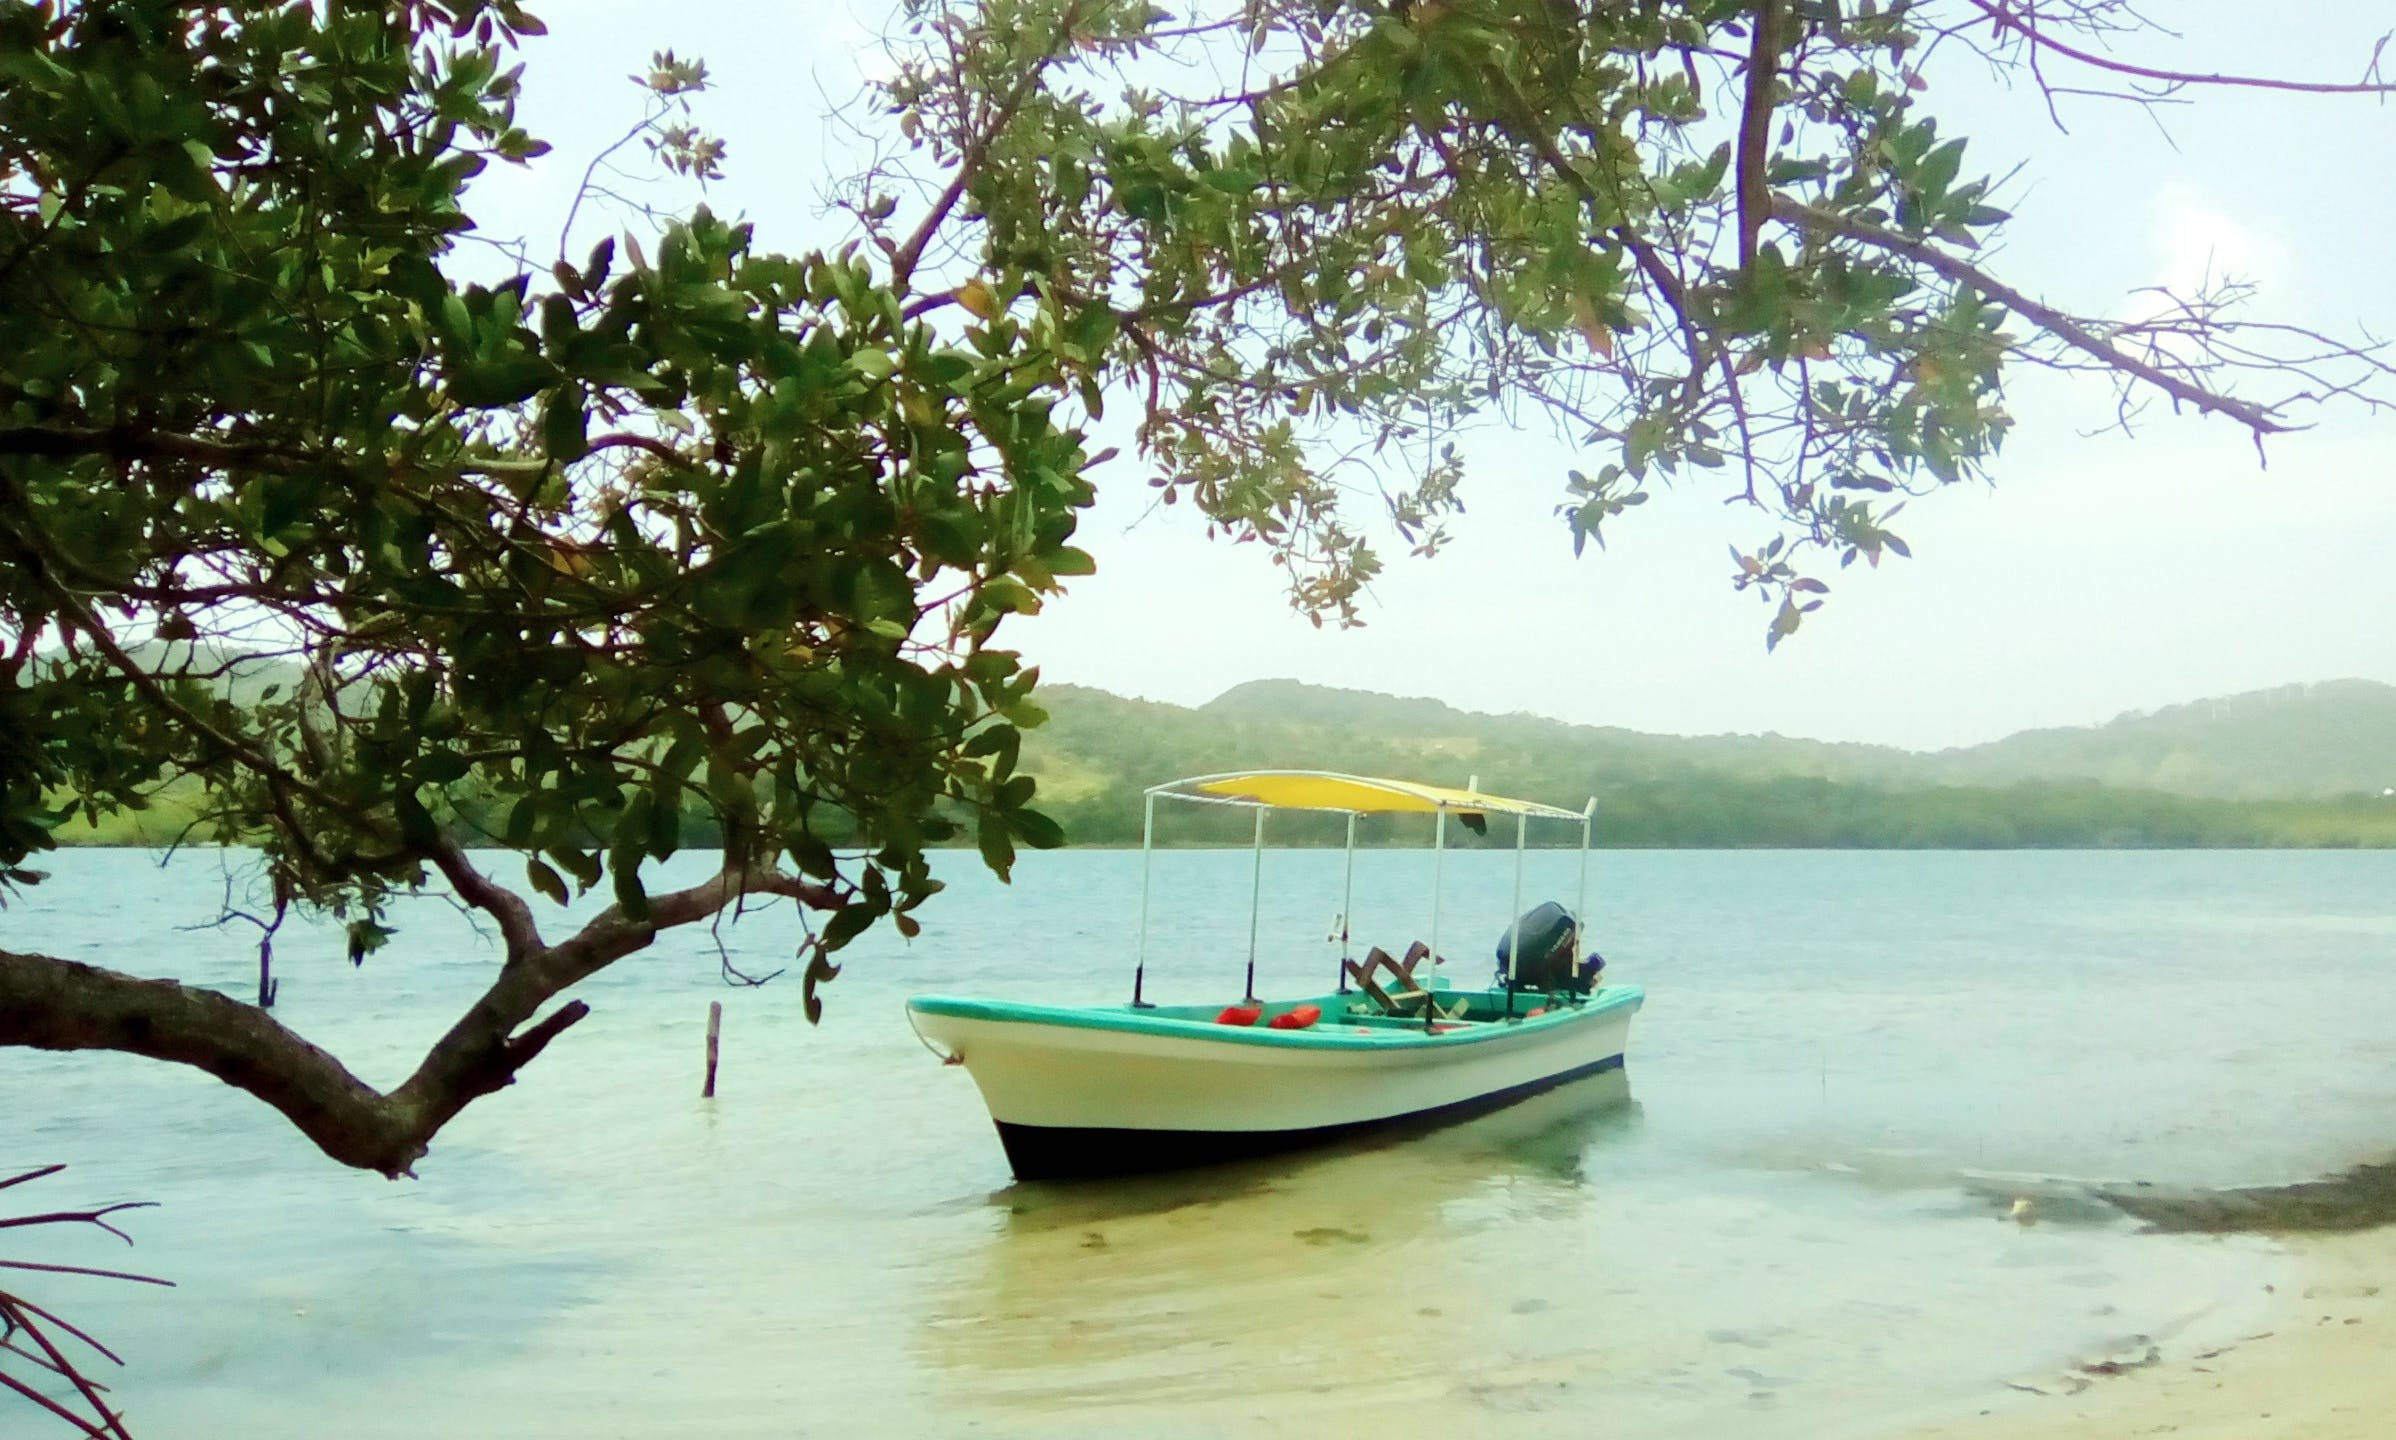 Enjoy Fishing in Islas de la Bahía, Honduras on Bowrider